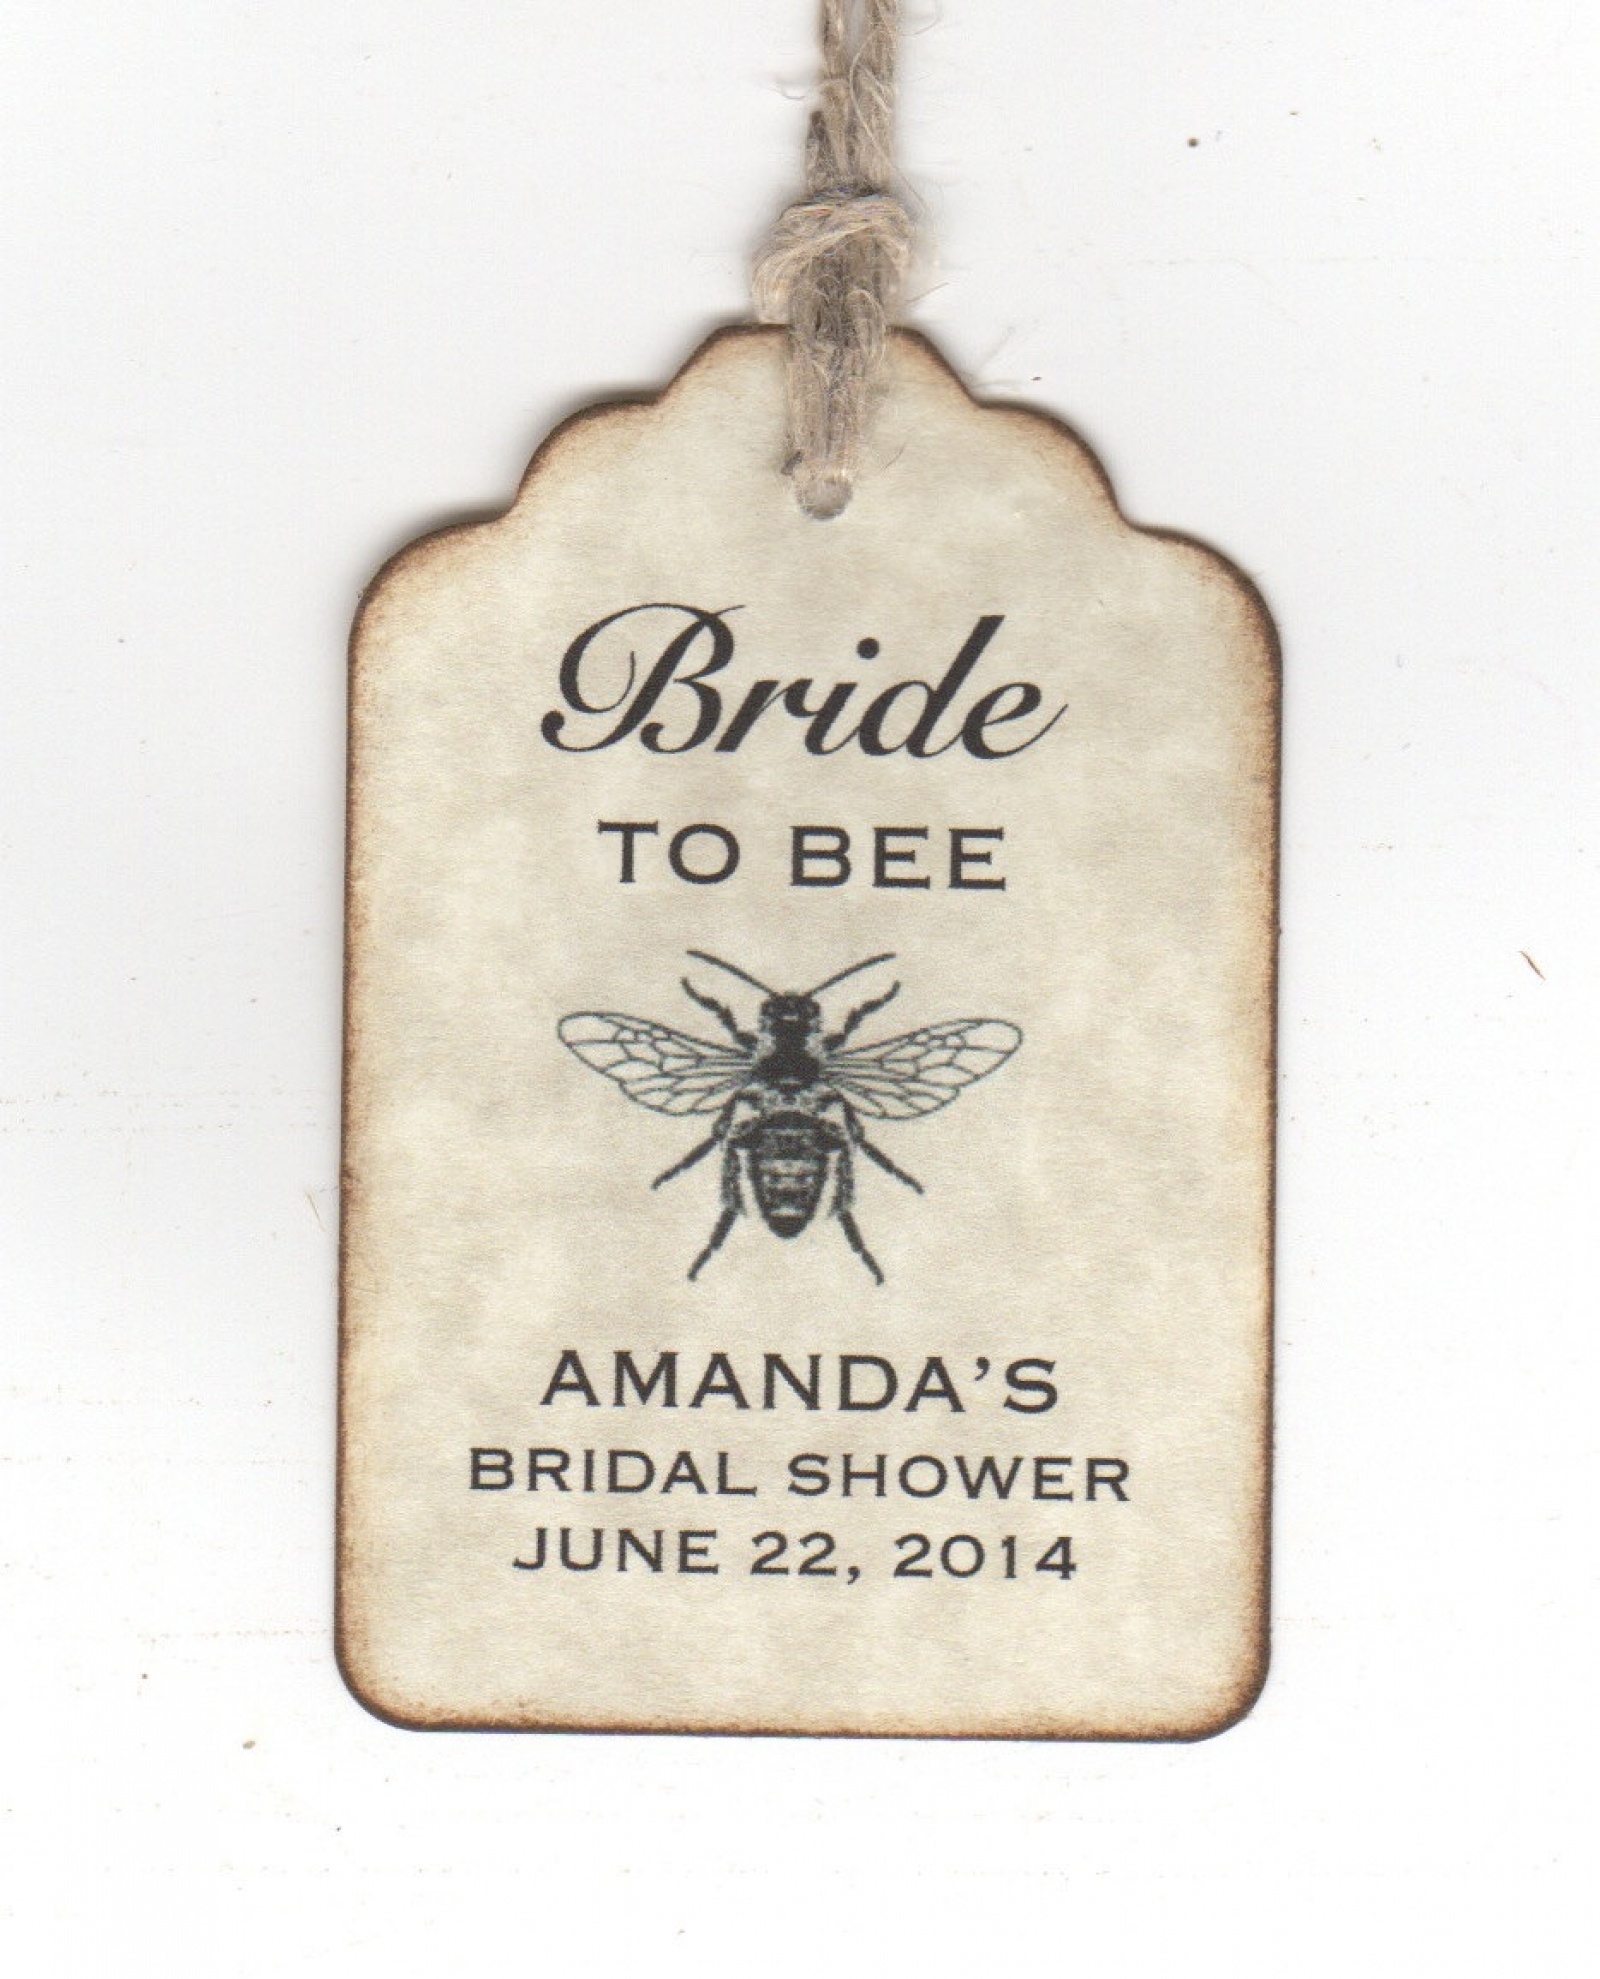 50 bride to bee wedding bridal shower favor gift tags honey jar label tags personalized vintage style